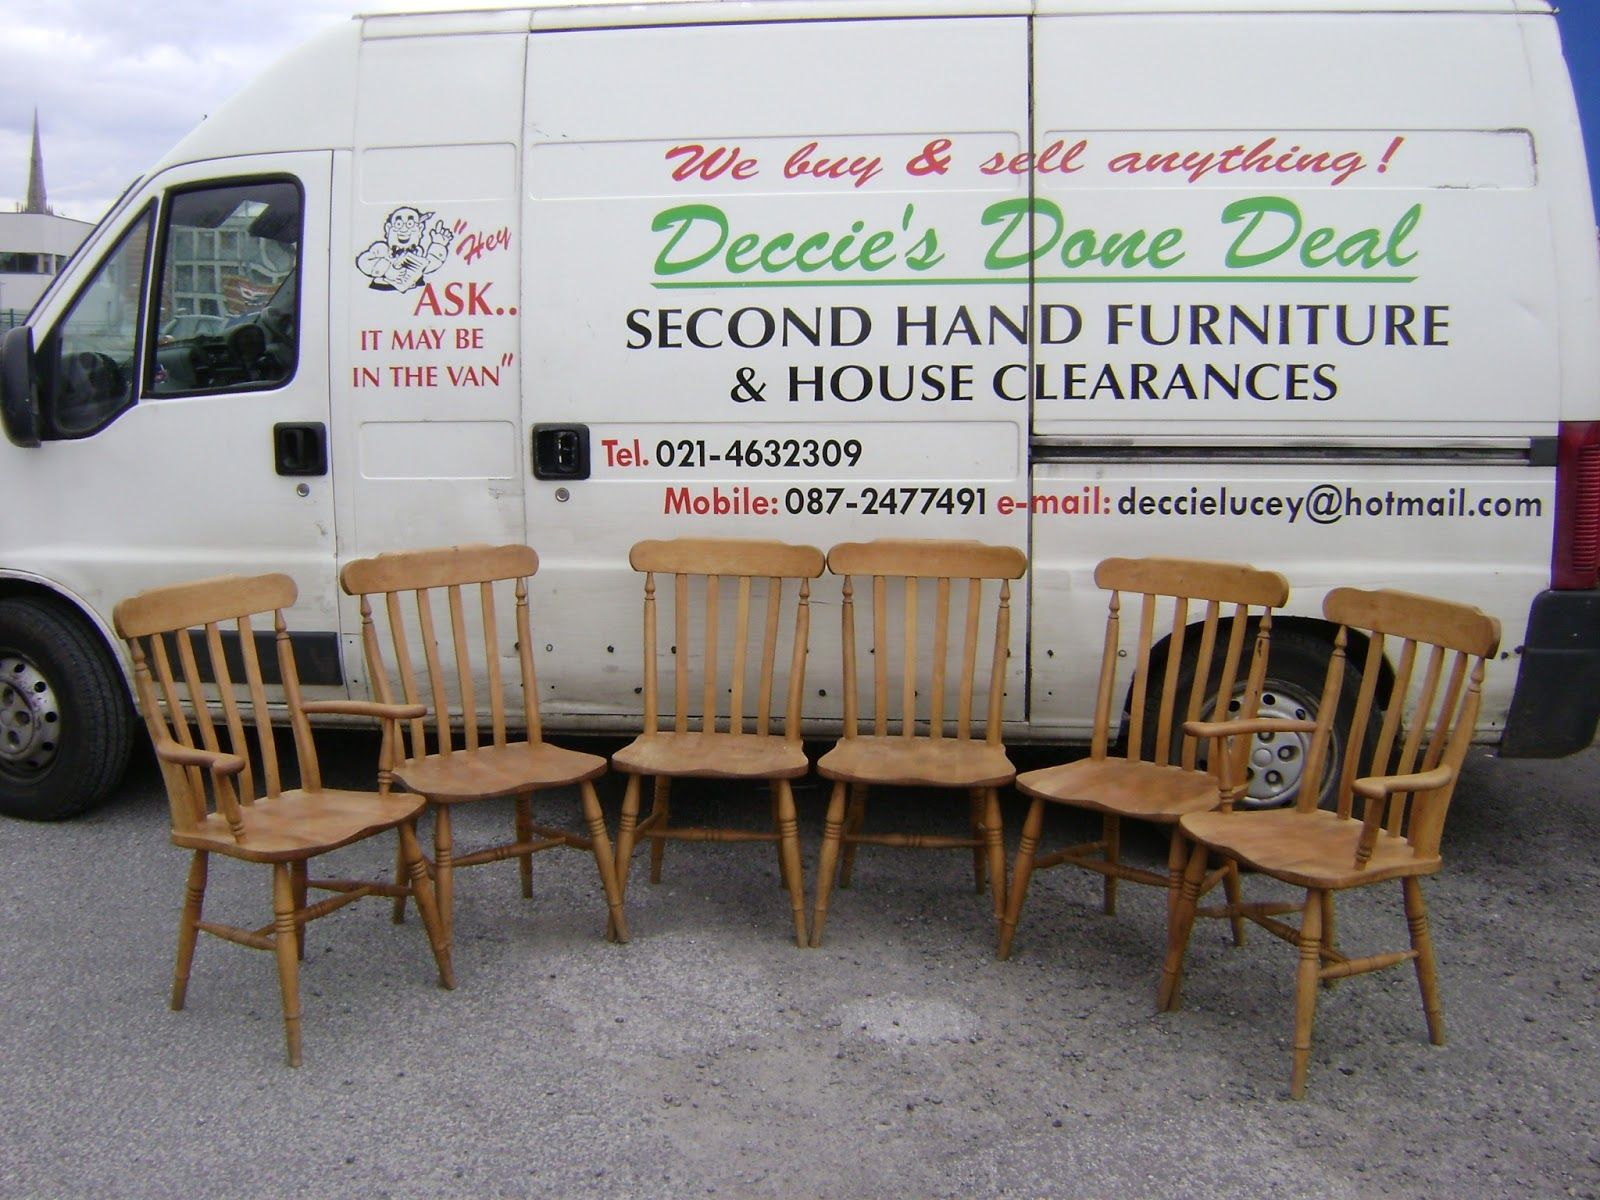 Deccies Done Deal Second Hand Furniture Amp House Clearances